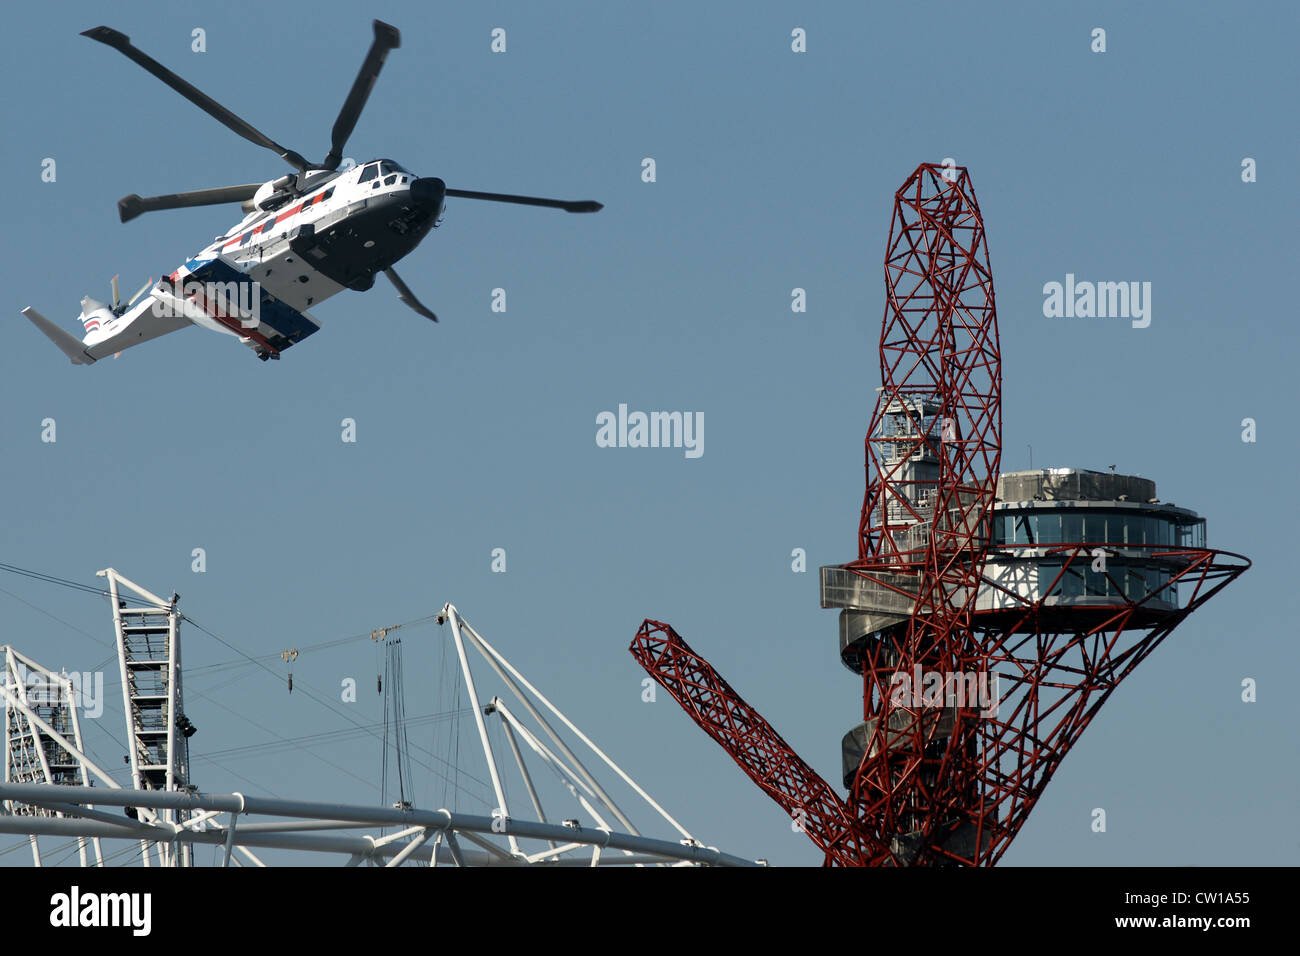 ArcelorMittal Orbit tower, London - Stock Image